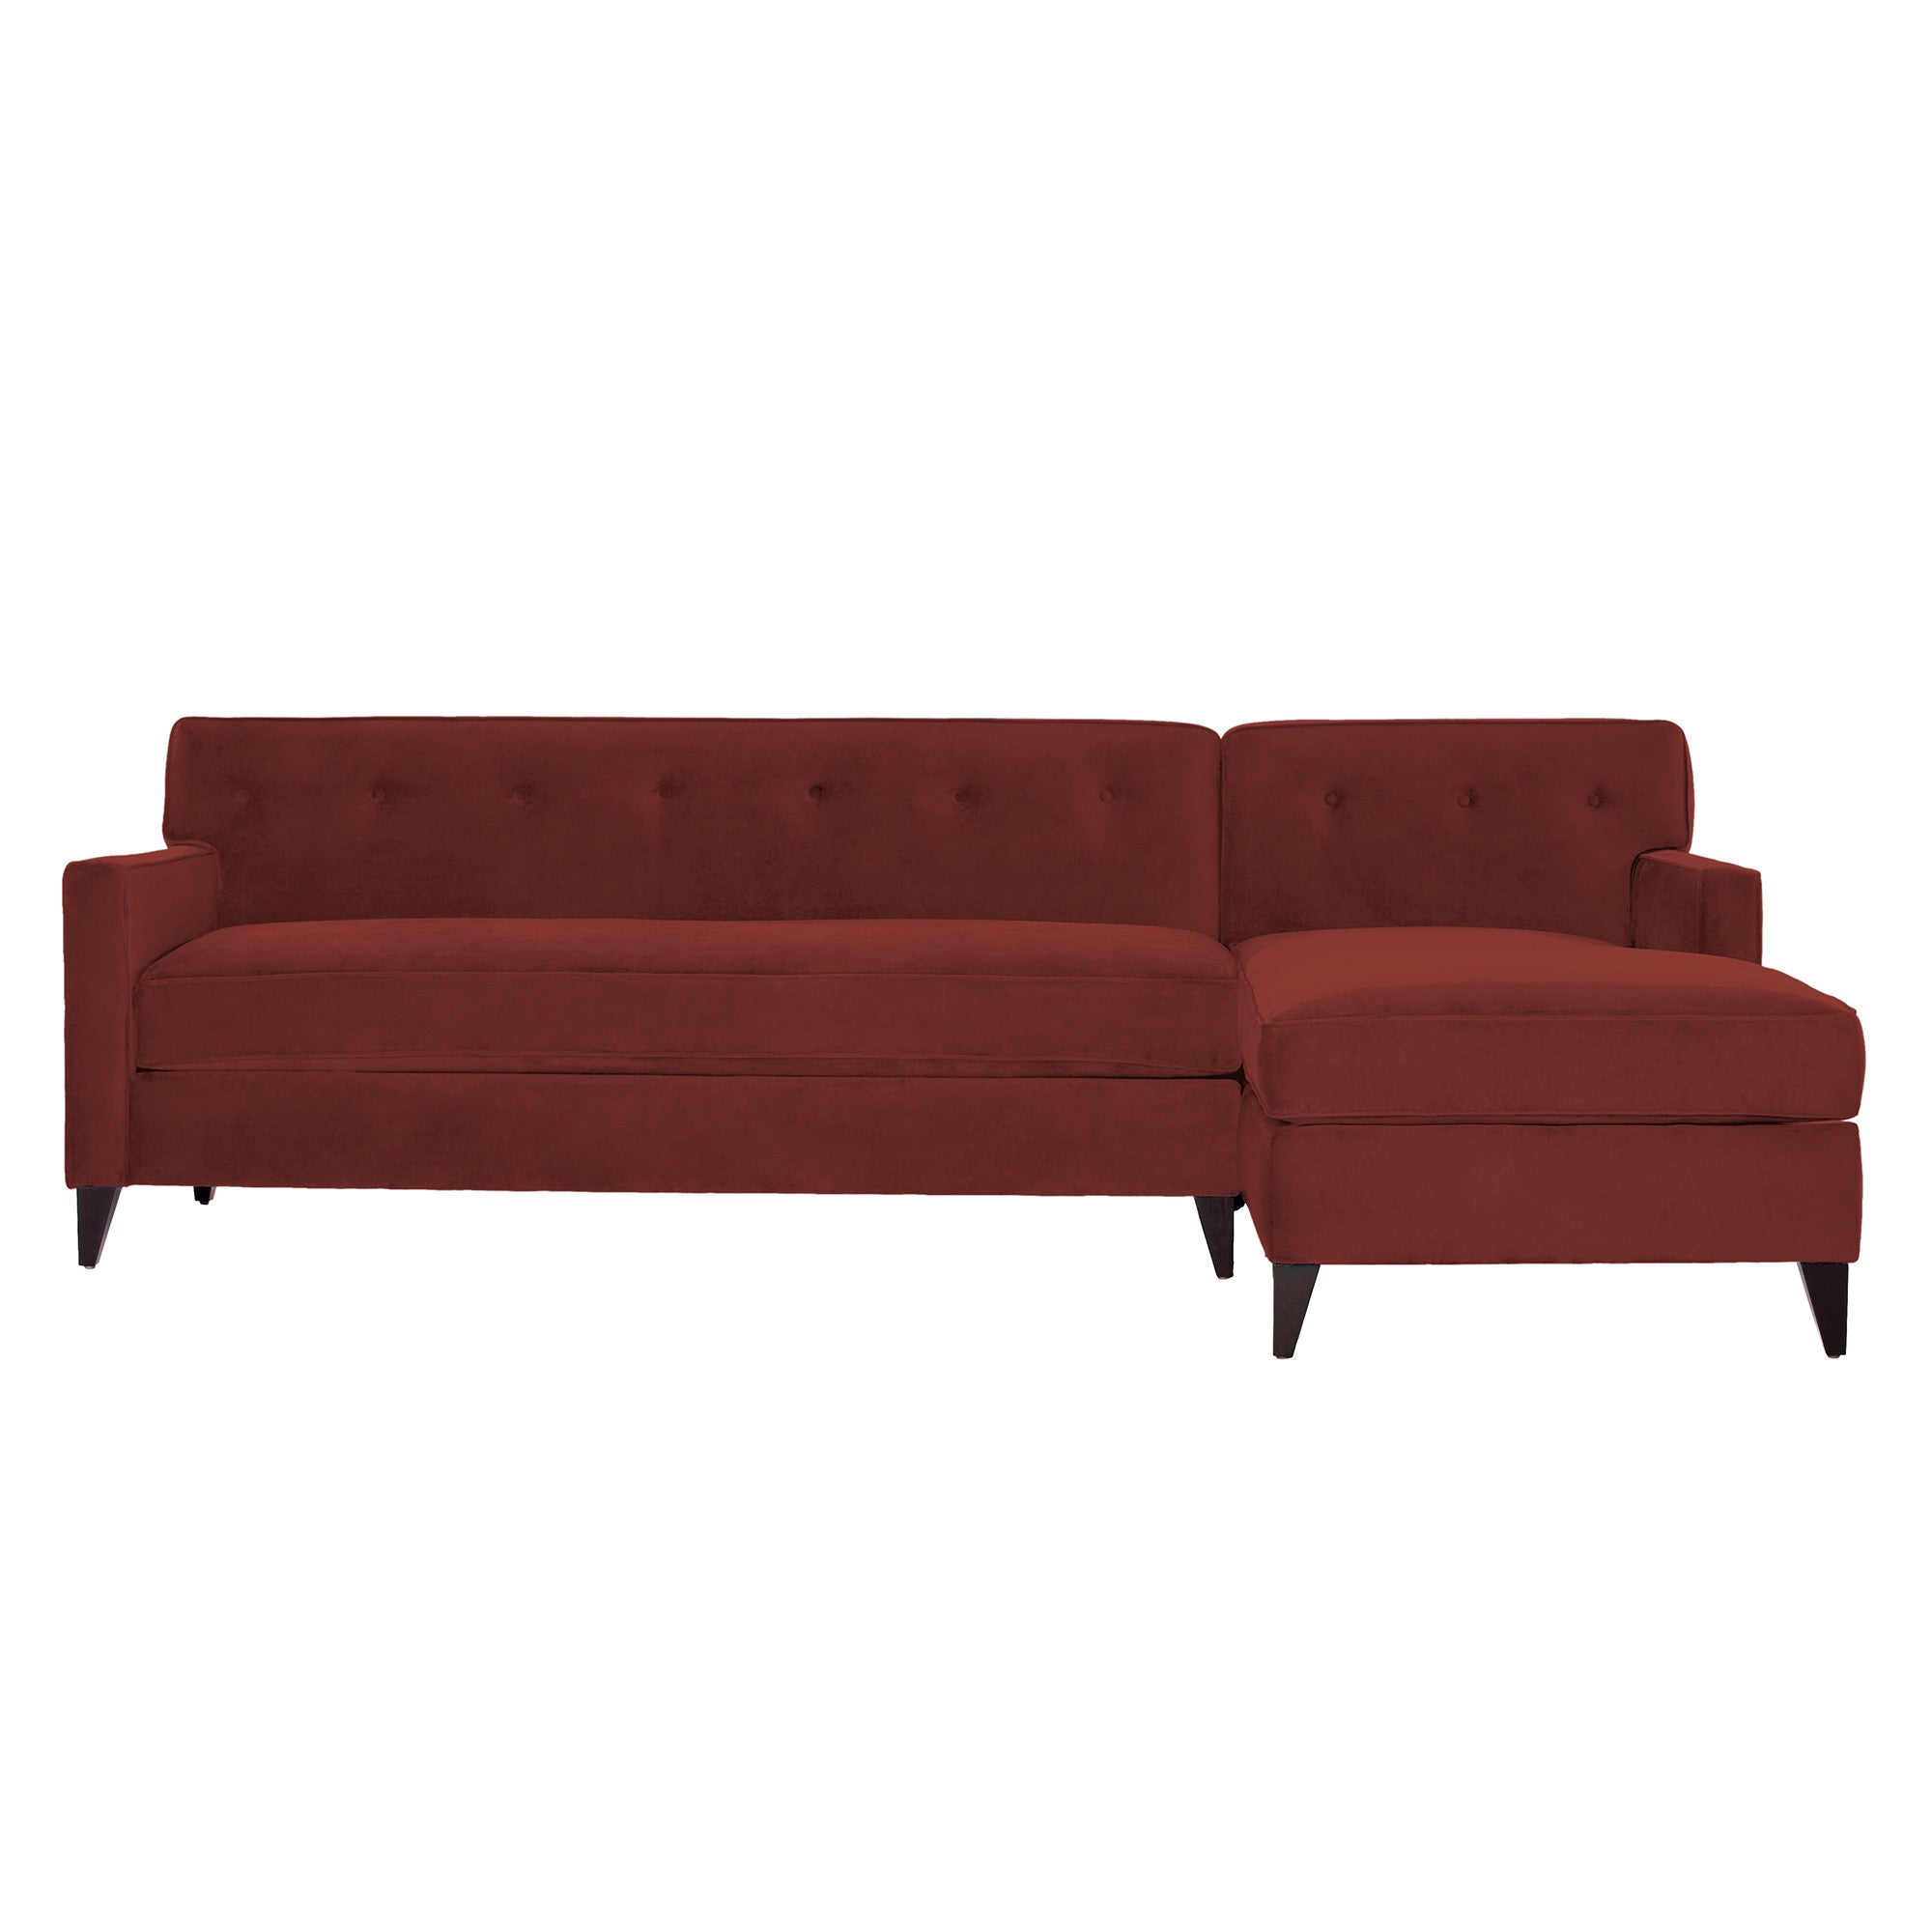 Harrison 2 Piece Sectional Sofa from Kyle Schuneman – Apt2B